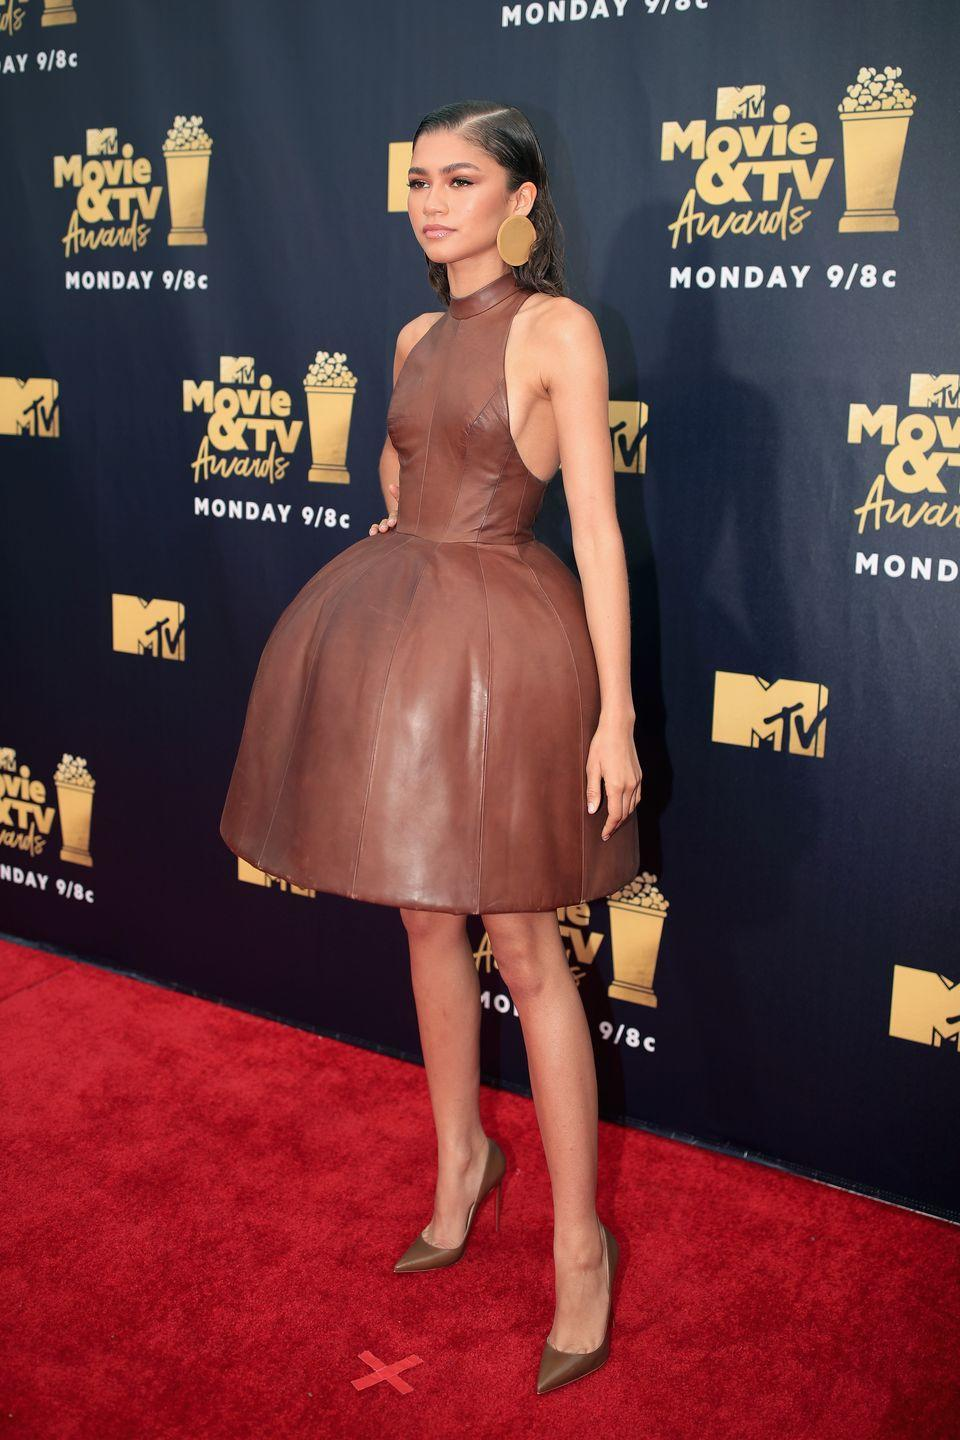 <p>This leather August Getty dress had a structured dome skirt, so obviously she was the center of attention at the 2018 MTV Movie Awards.</p>